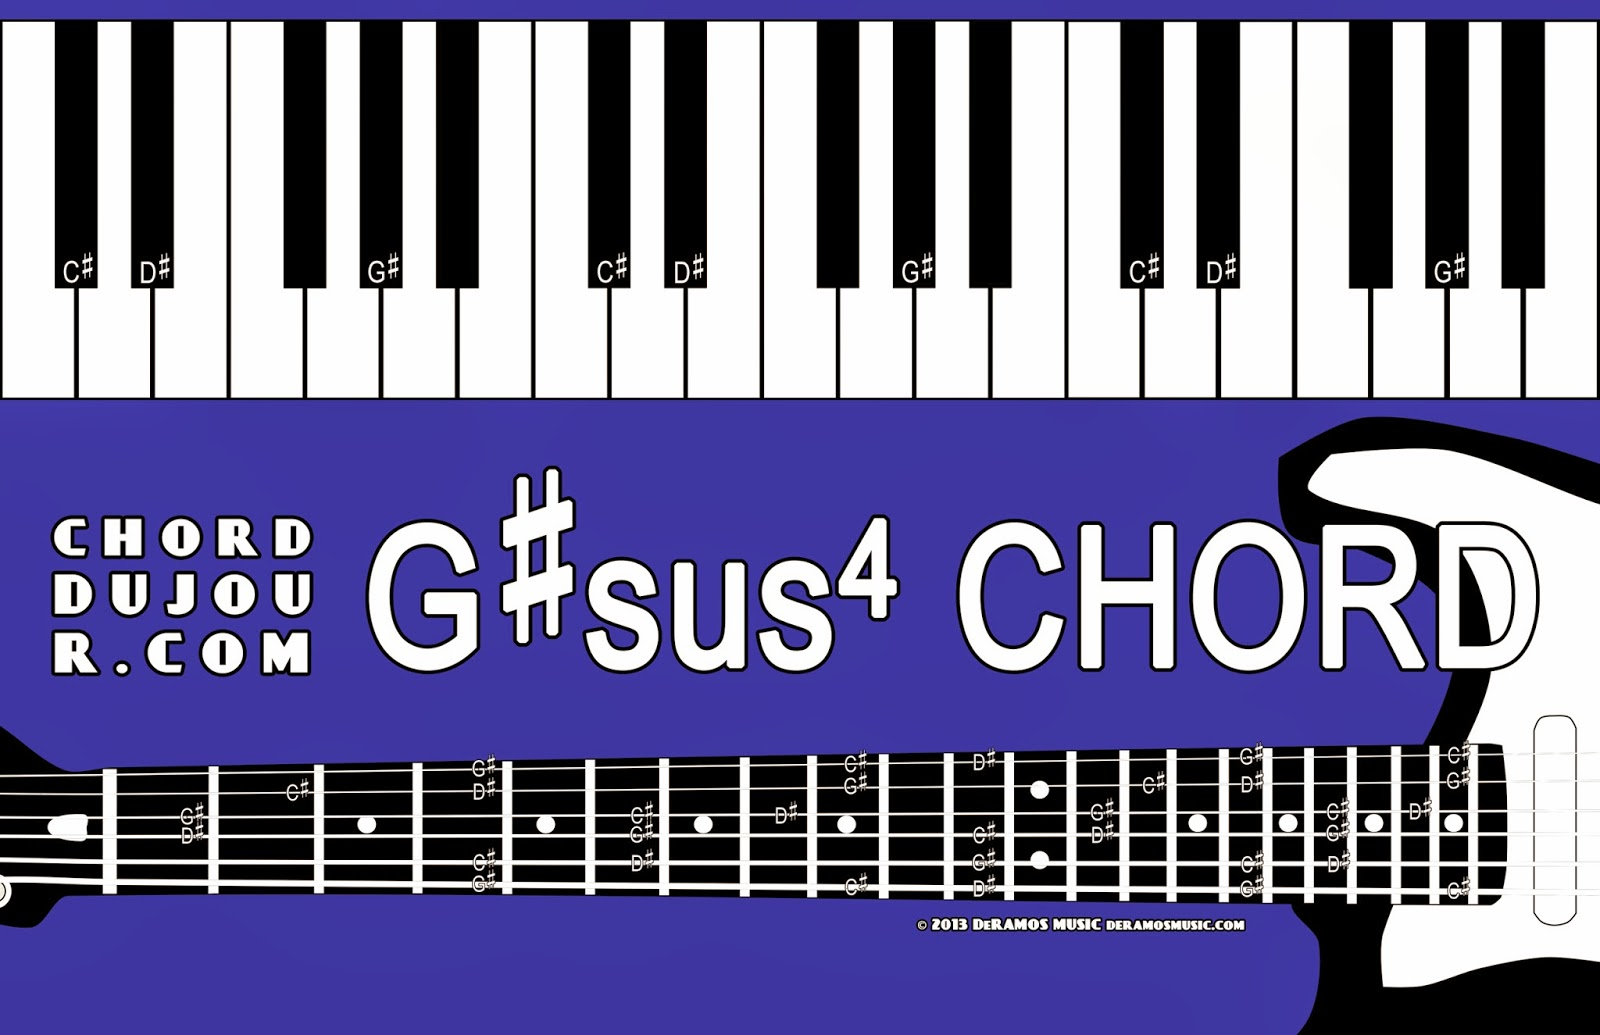 Chord du jour dictionary gsus4 chord dictionary gsus4 chord hexwebz Choice Image